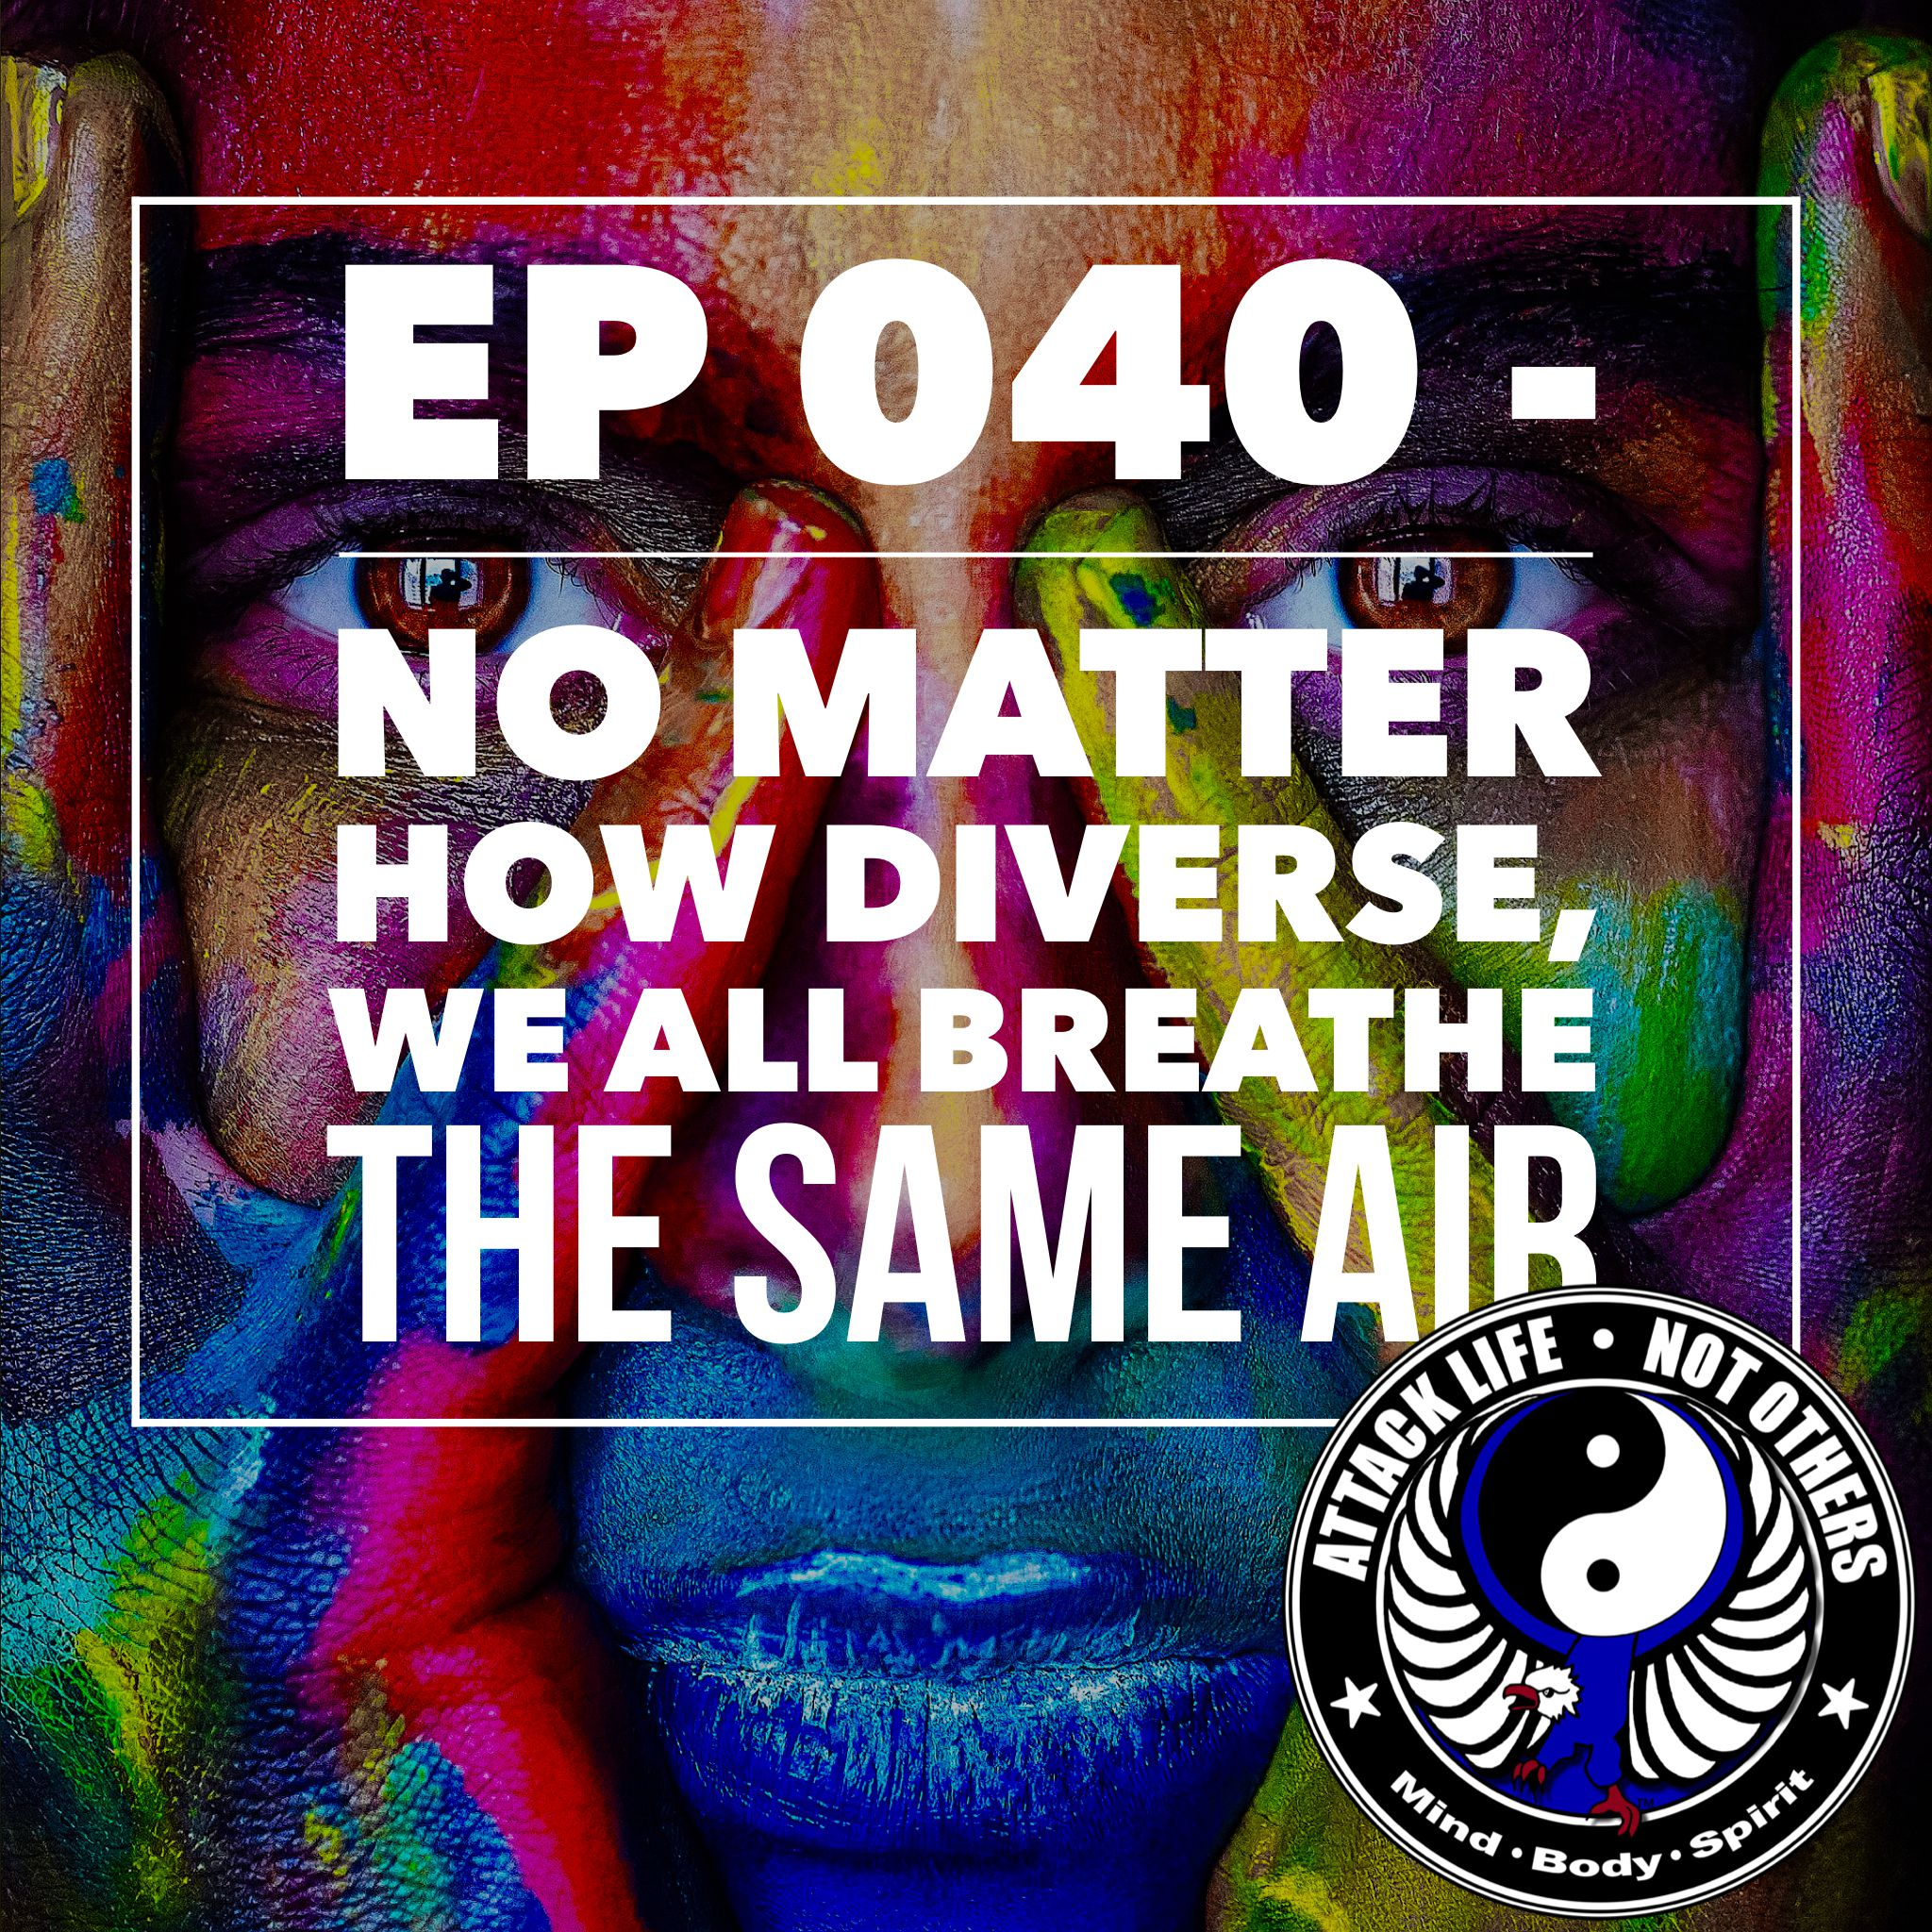 Artwork for Ep 040 - No Matter How Diverse, We All Breathe the Same Air